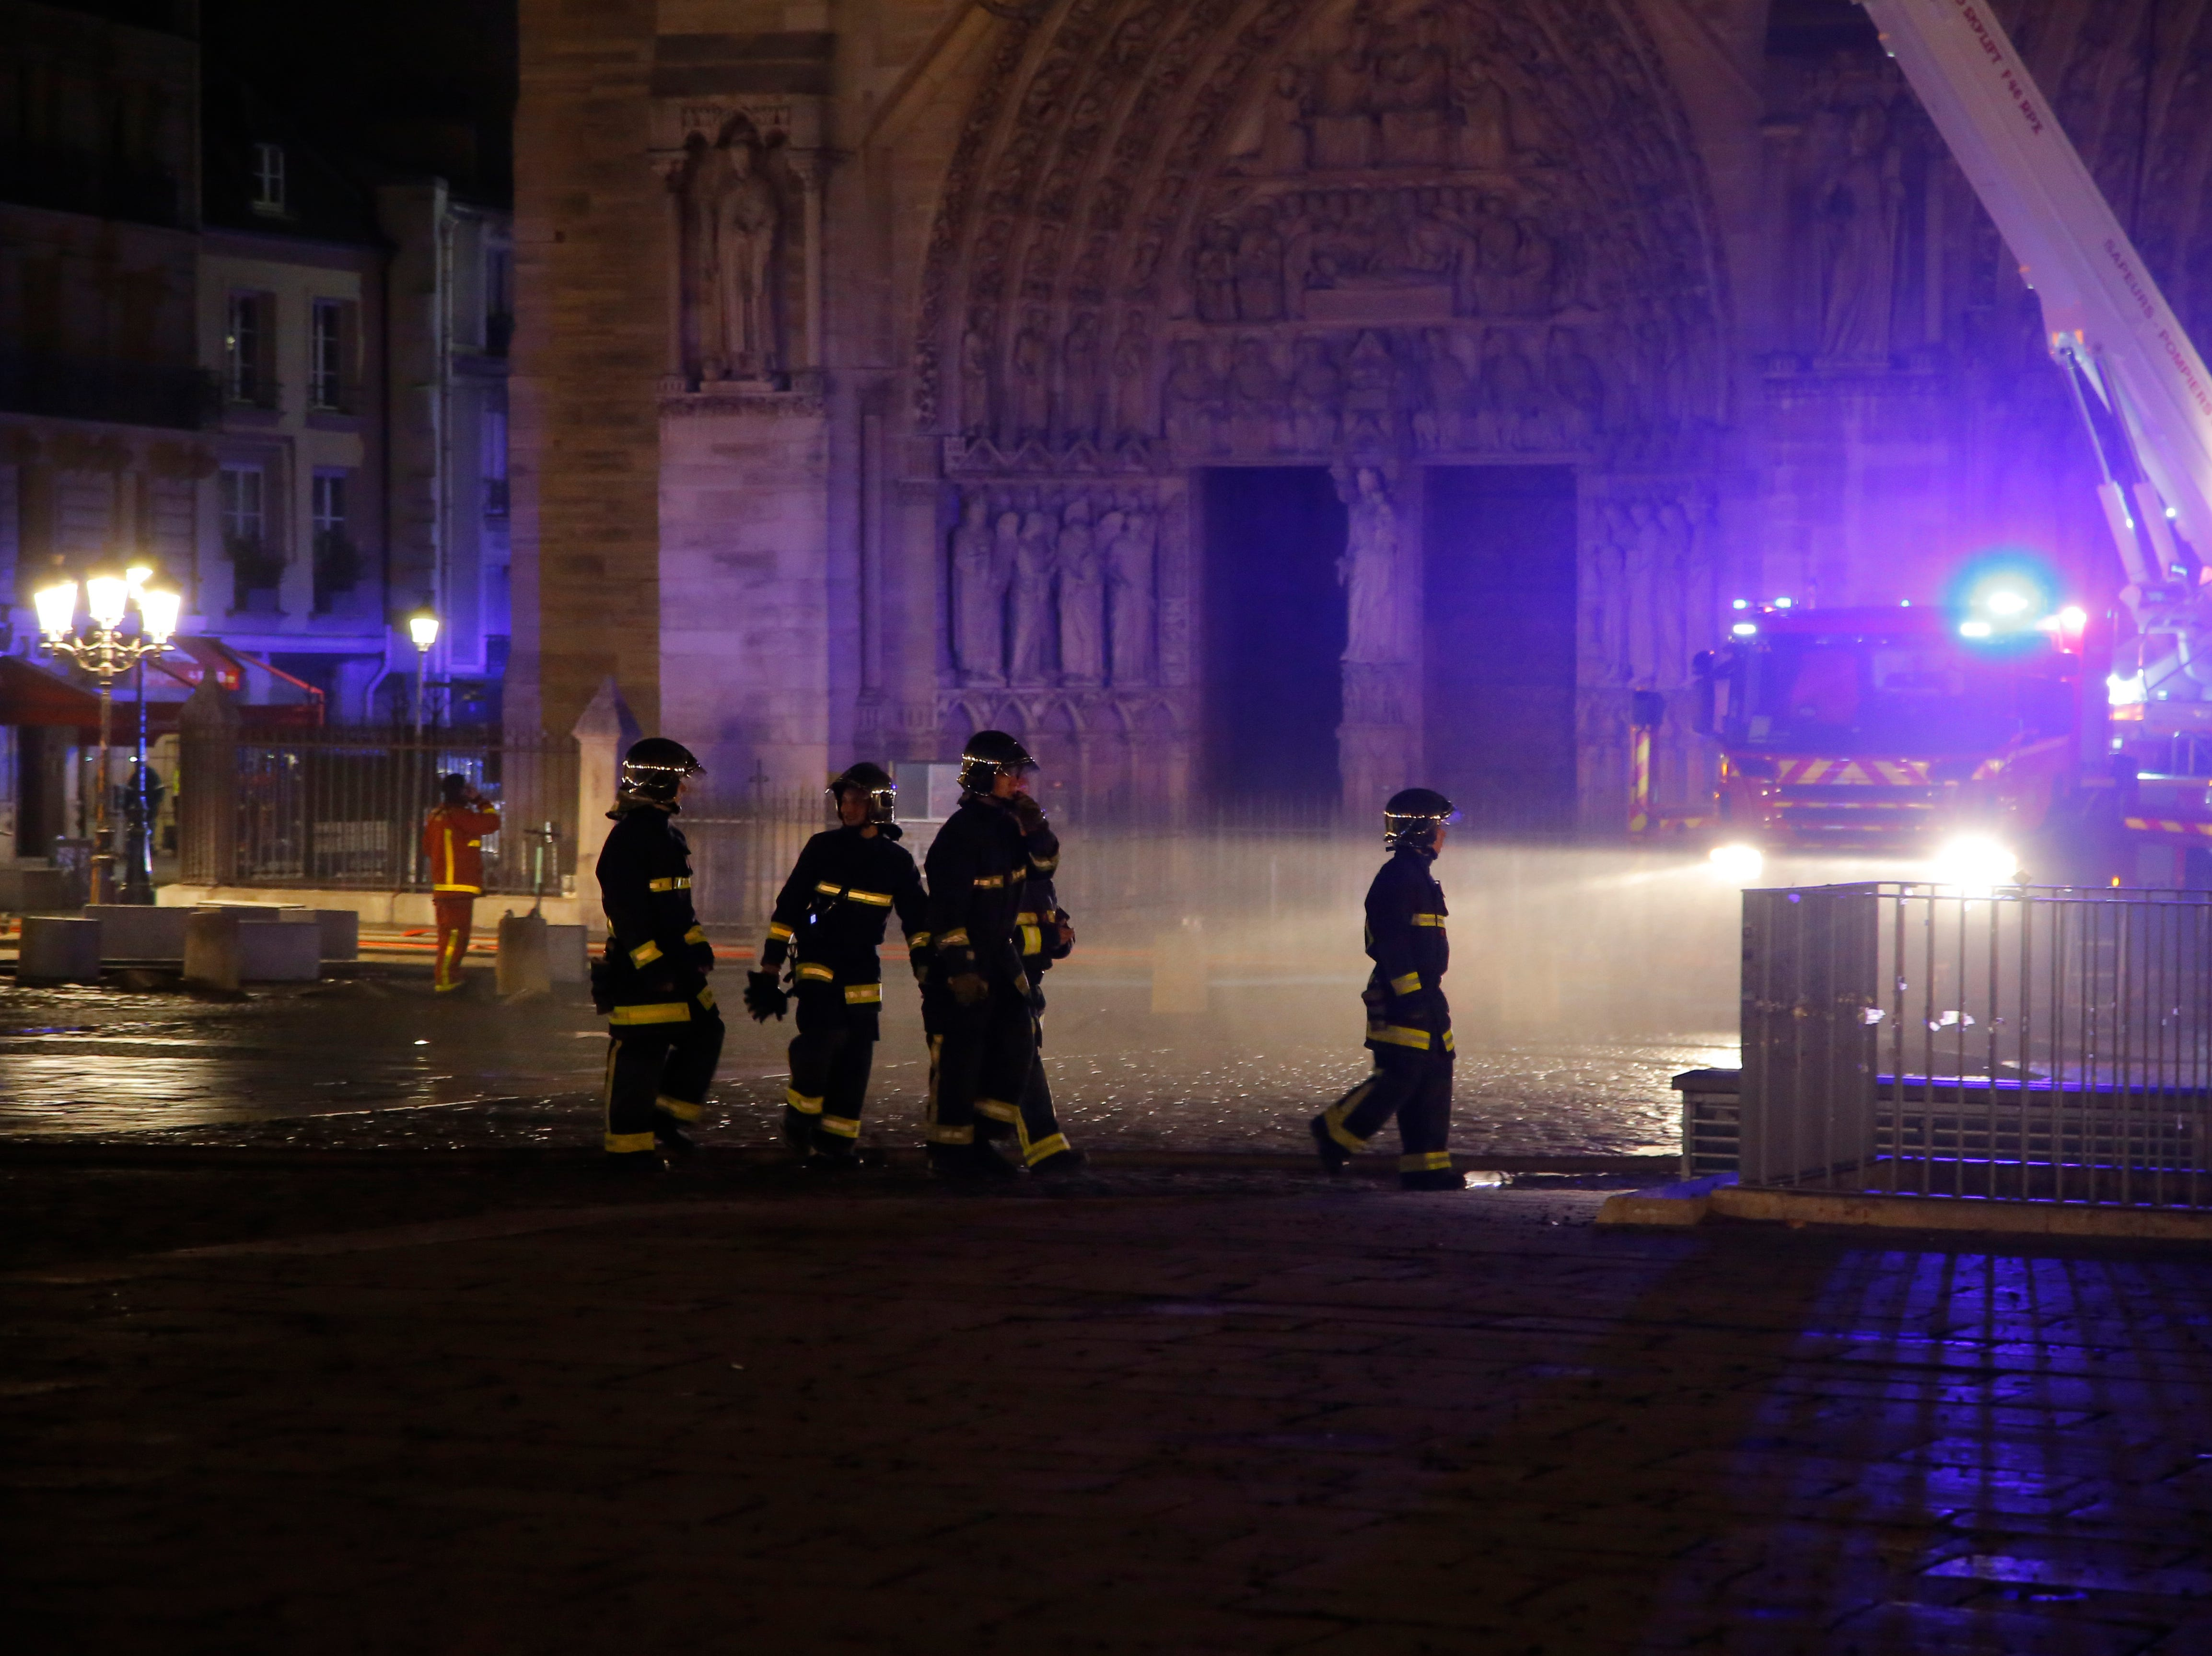 Fire fighters work outside Notre Dame cathedral burning in Paris, Monday, April 15, 2019. A catastrophic fire engulfed the upper reaches of Paris' soaring Notre Dame Cathedral as it was undergoing renovations Monday, threatening one of the greatest architectural treasures of the Western world as tourists and Parisians looked on aghast from the streets below.